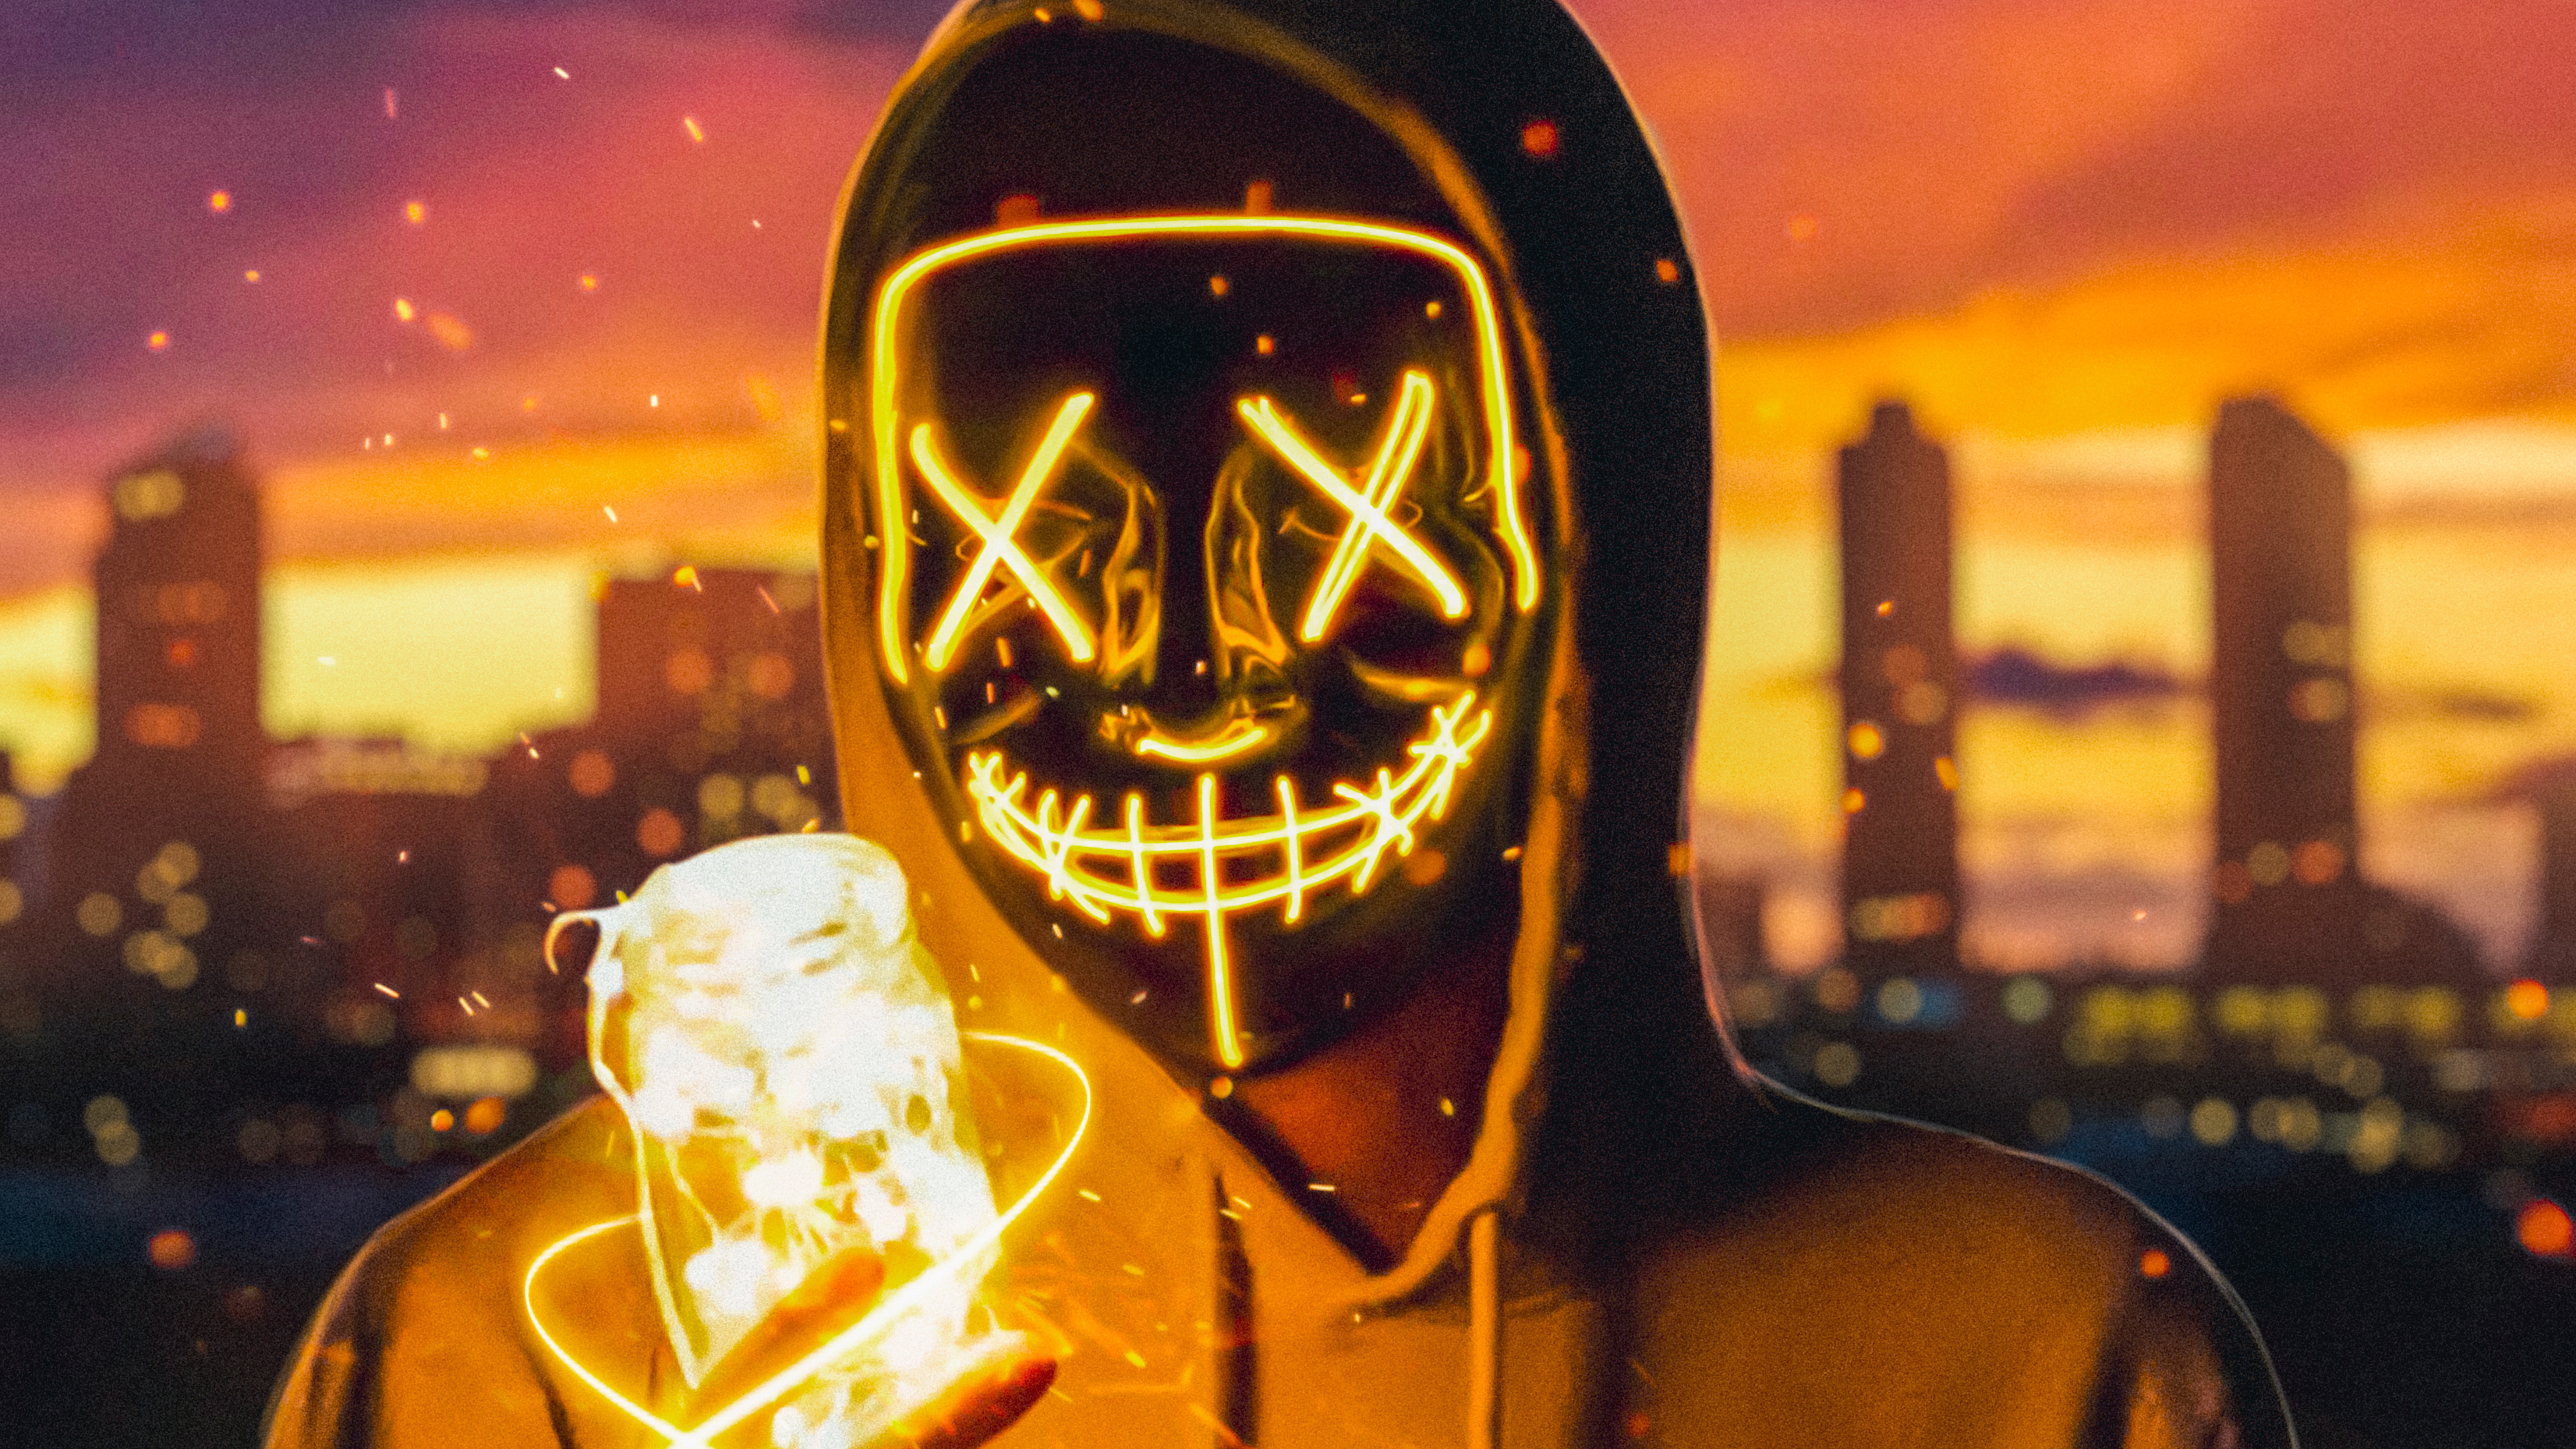 1600x900 Neon Mask Guy With Light Cube 1600x900 Resolution Hd 4k Wallpapers Images Backgrounds Photos And Pictures